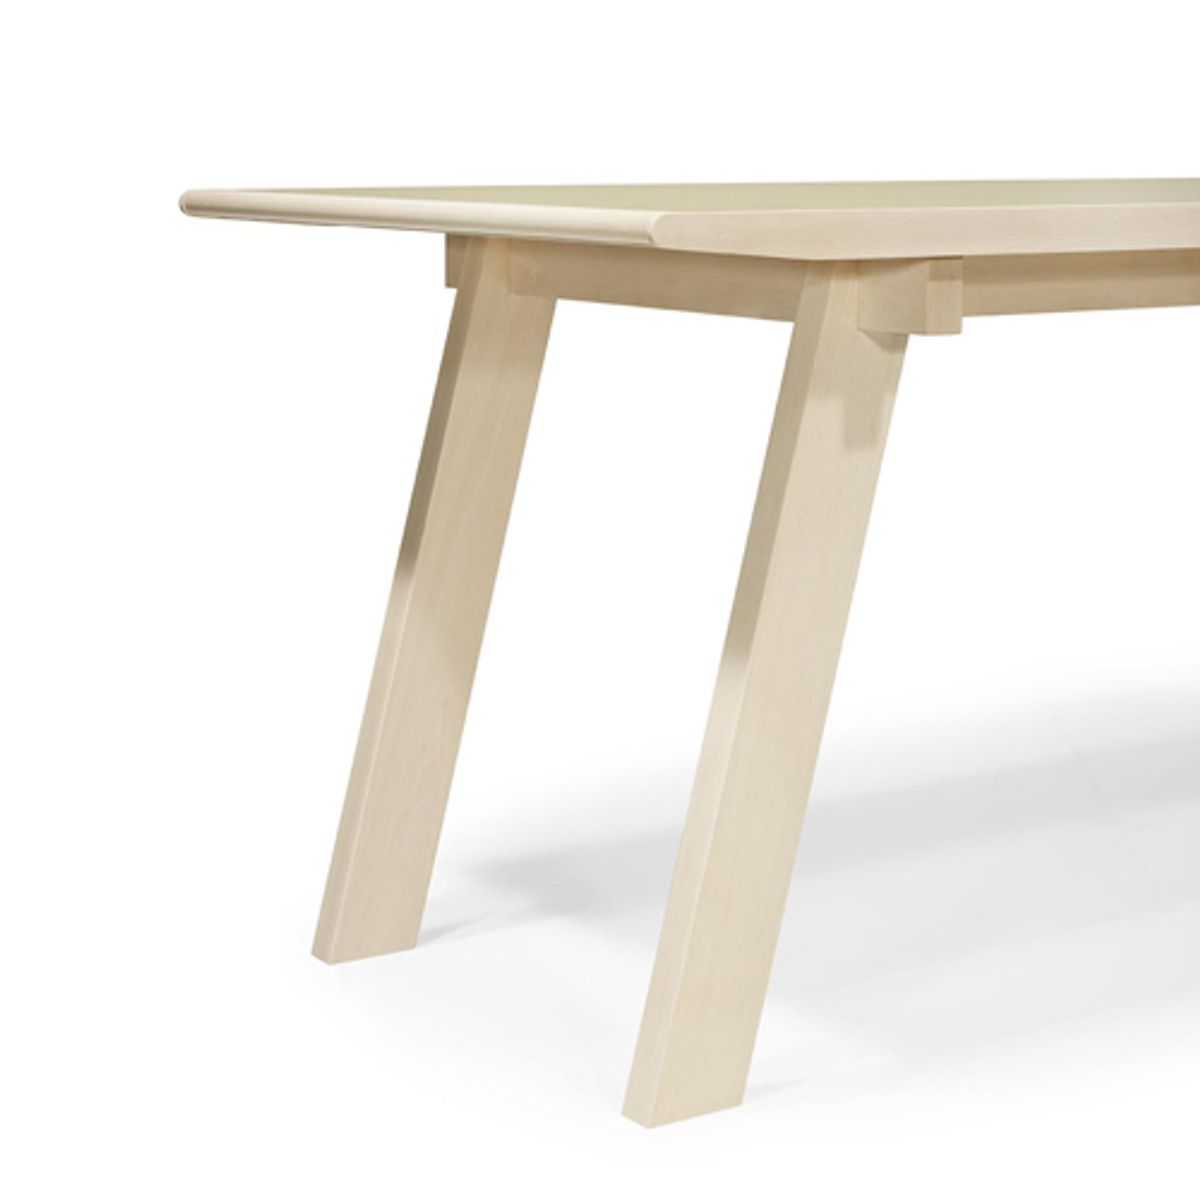 Table de salle manger brabant decoclico edition for Table salle a manger hetre massif